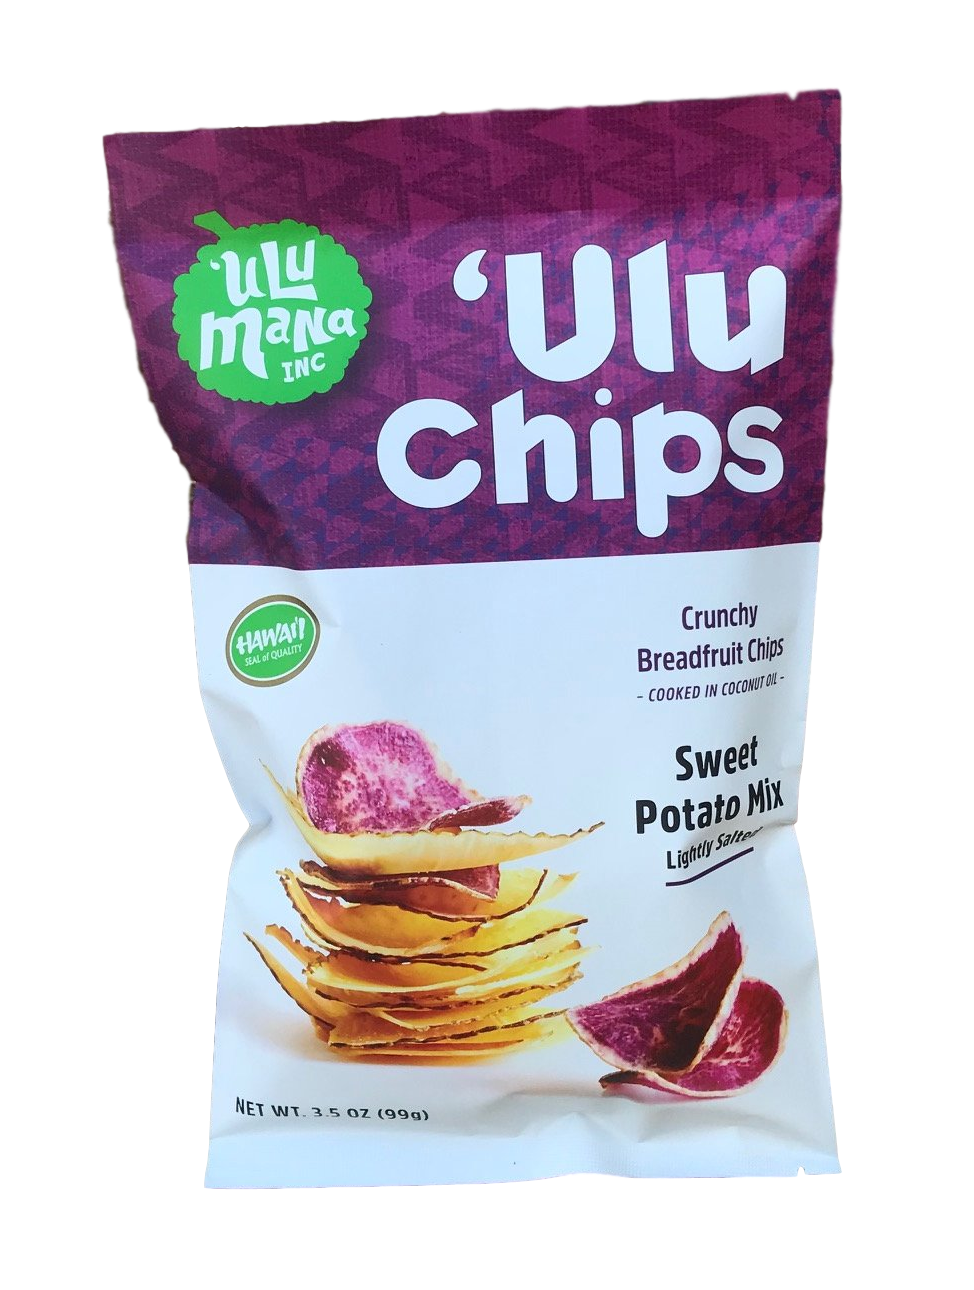 Sweet Potato Mix 'Ulu Chips 3.5oz - Ulu Mana